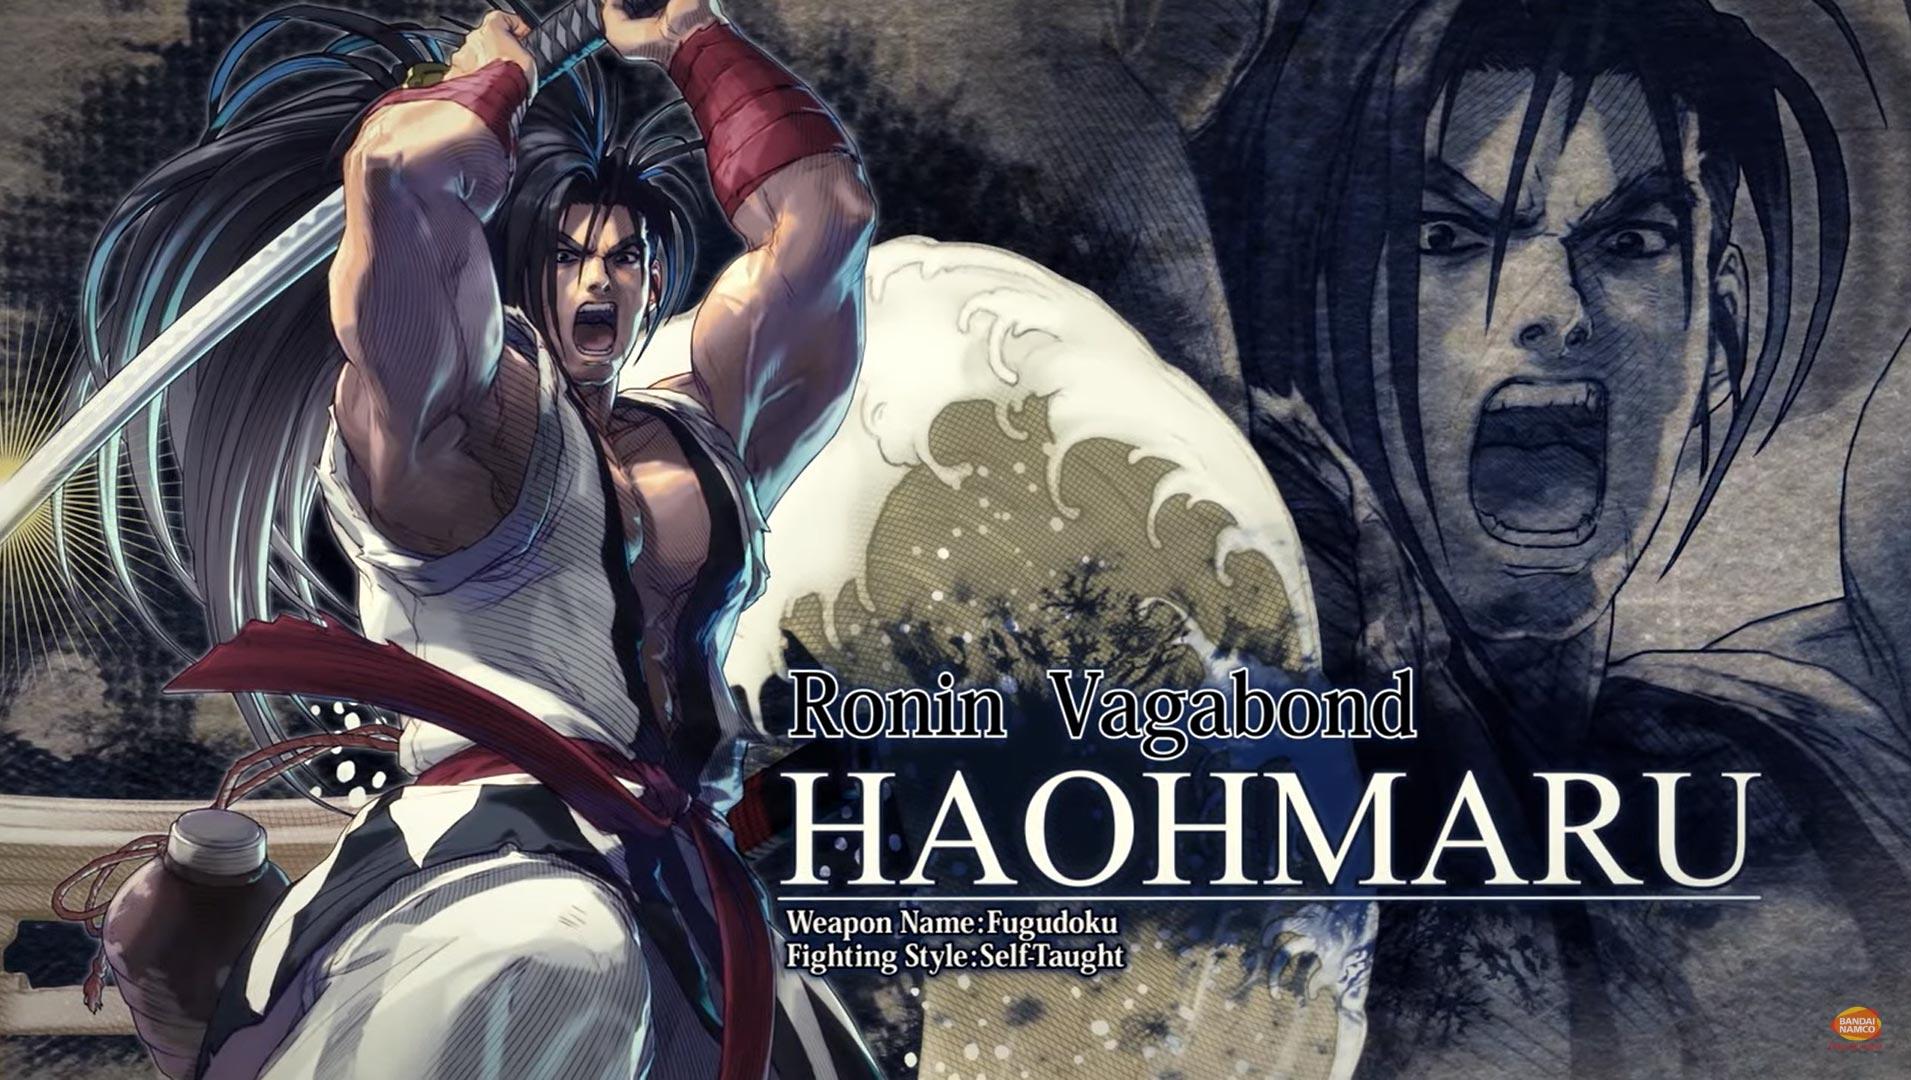 Haohmaru release date trailer 2 out of 9 image gallery